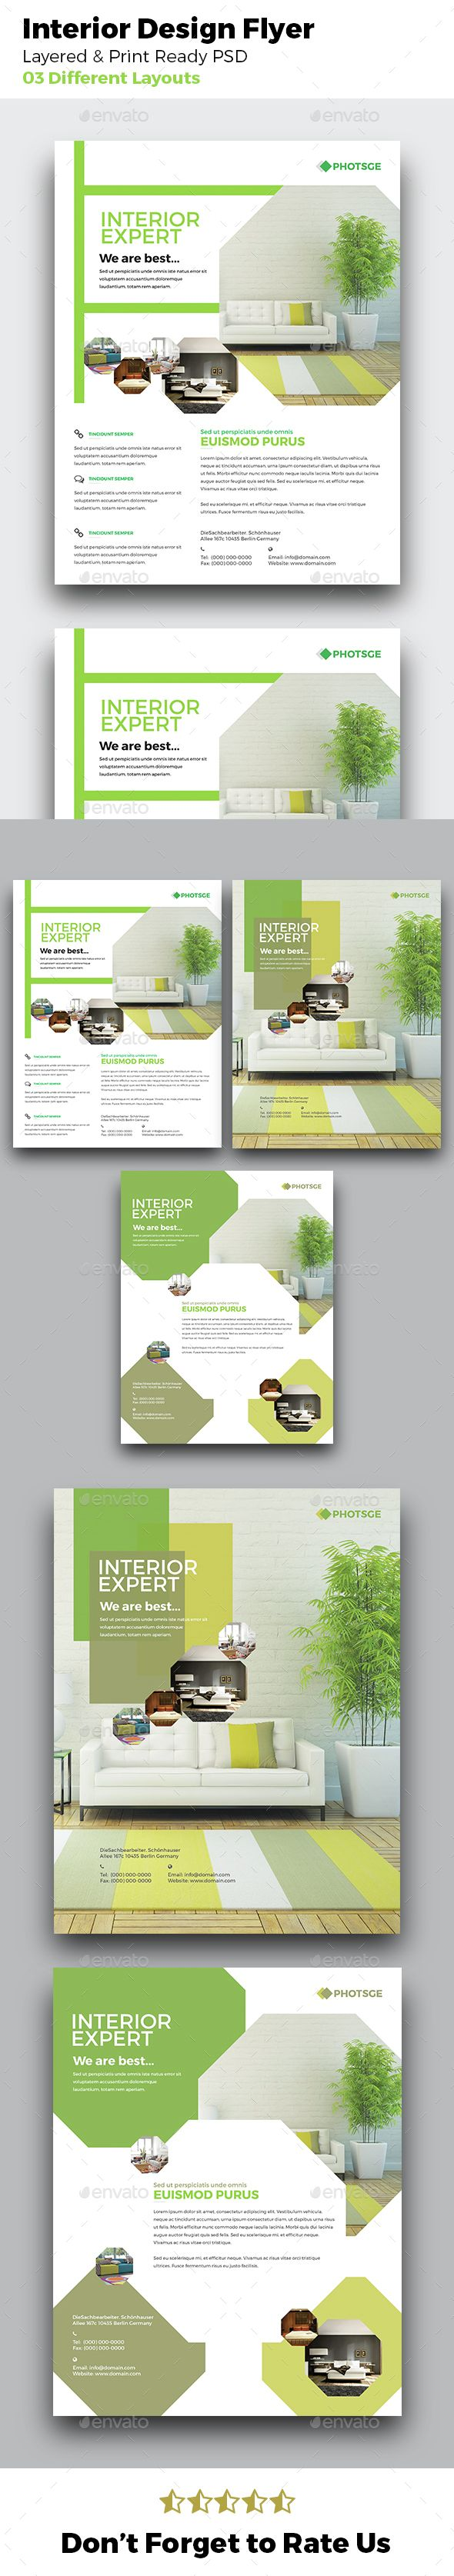 best ideas about cleaning companies realtor interior design flyer